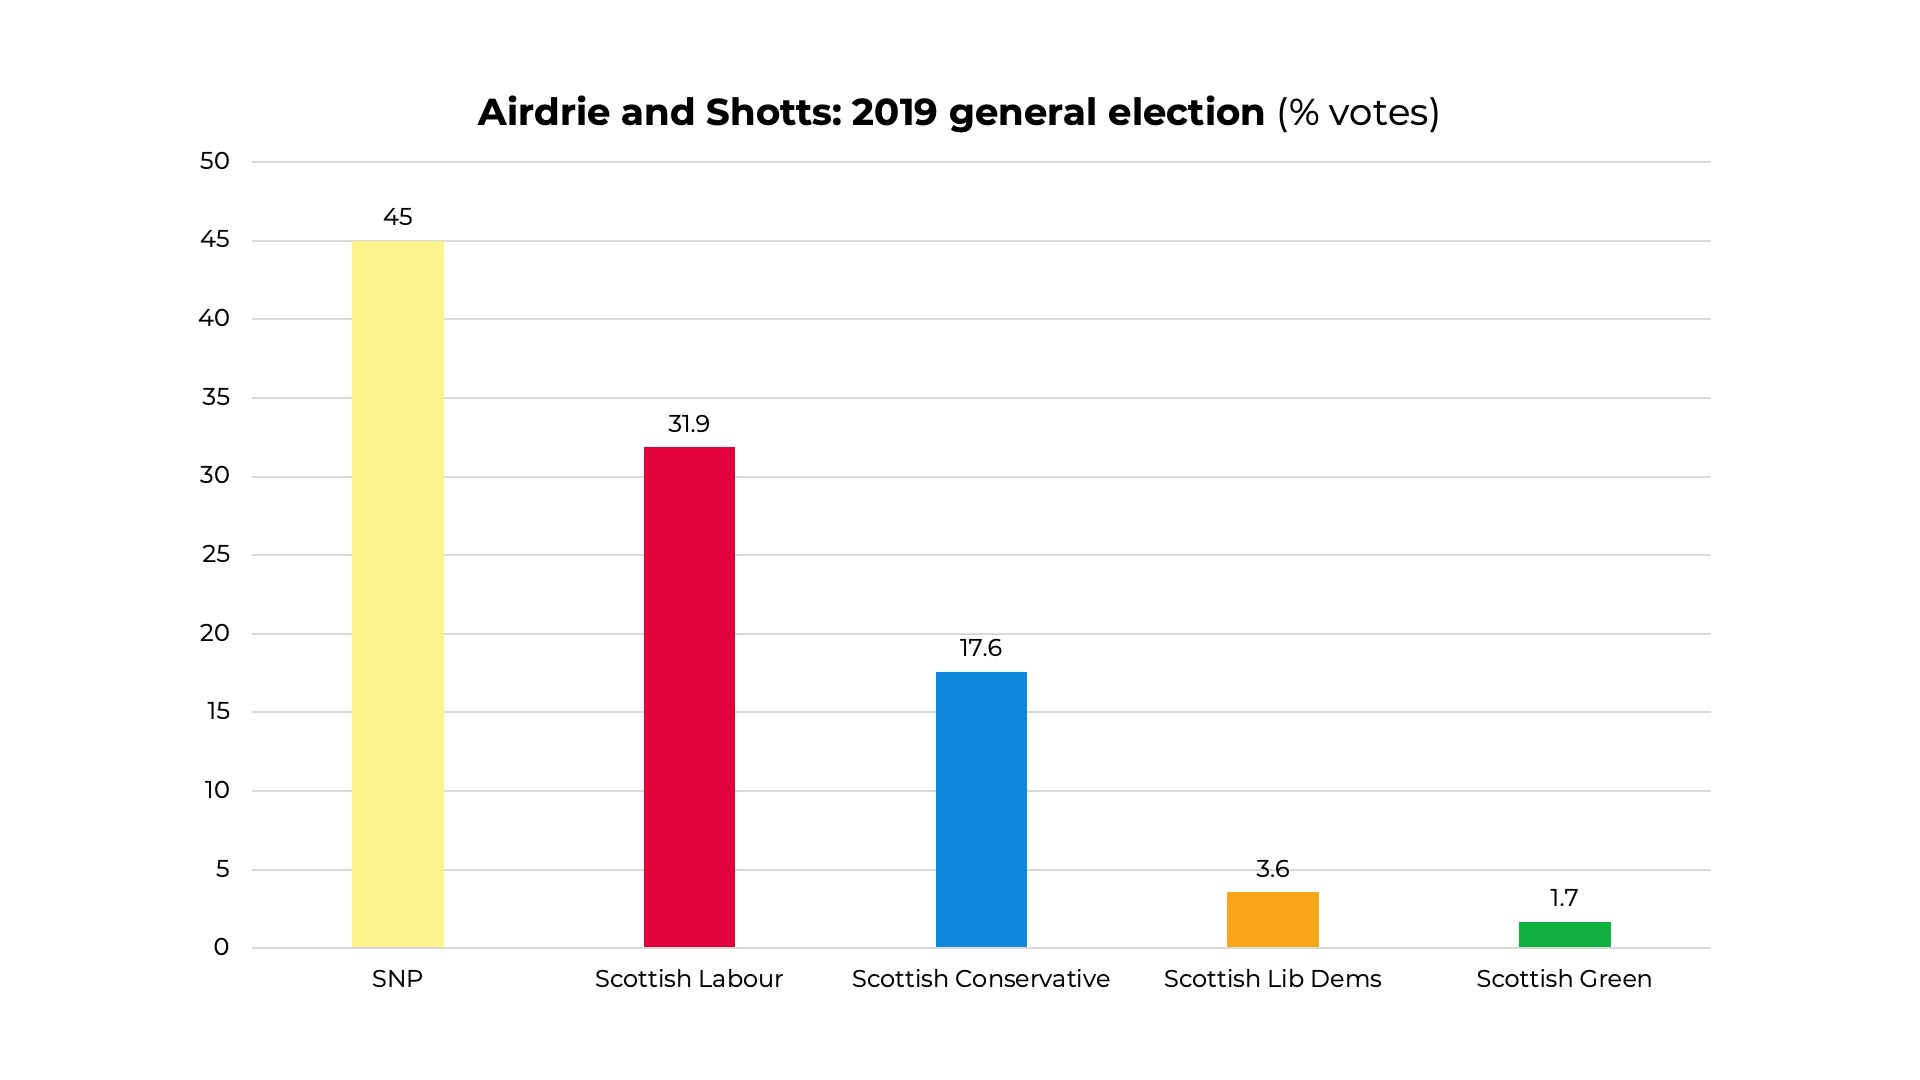 2019 Airdrie and Shotts General Election results